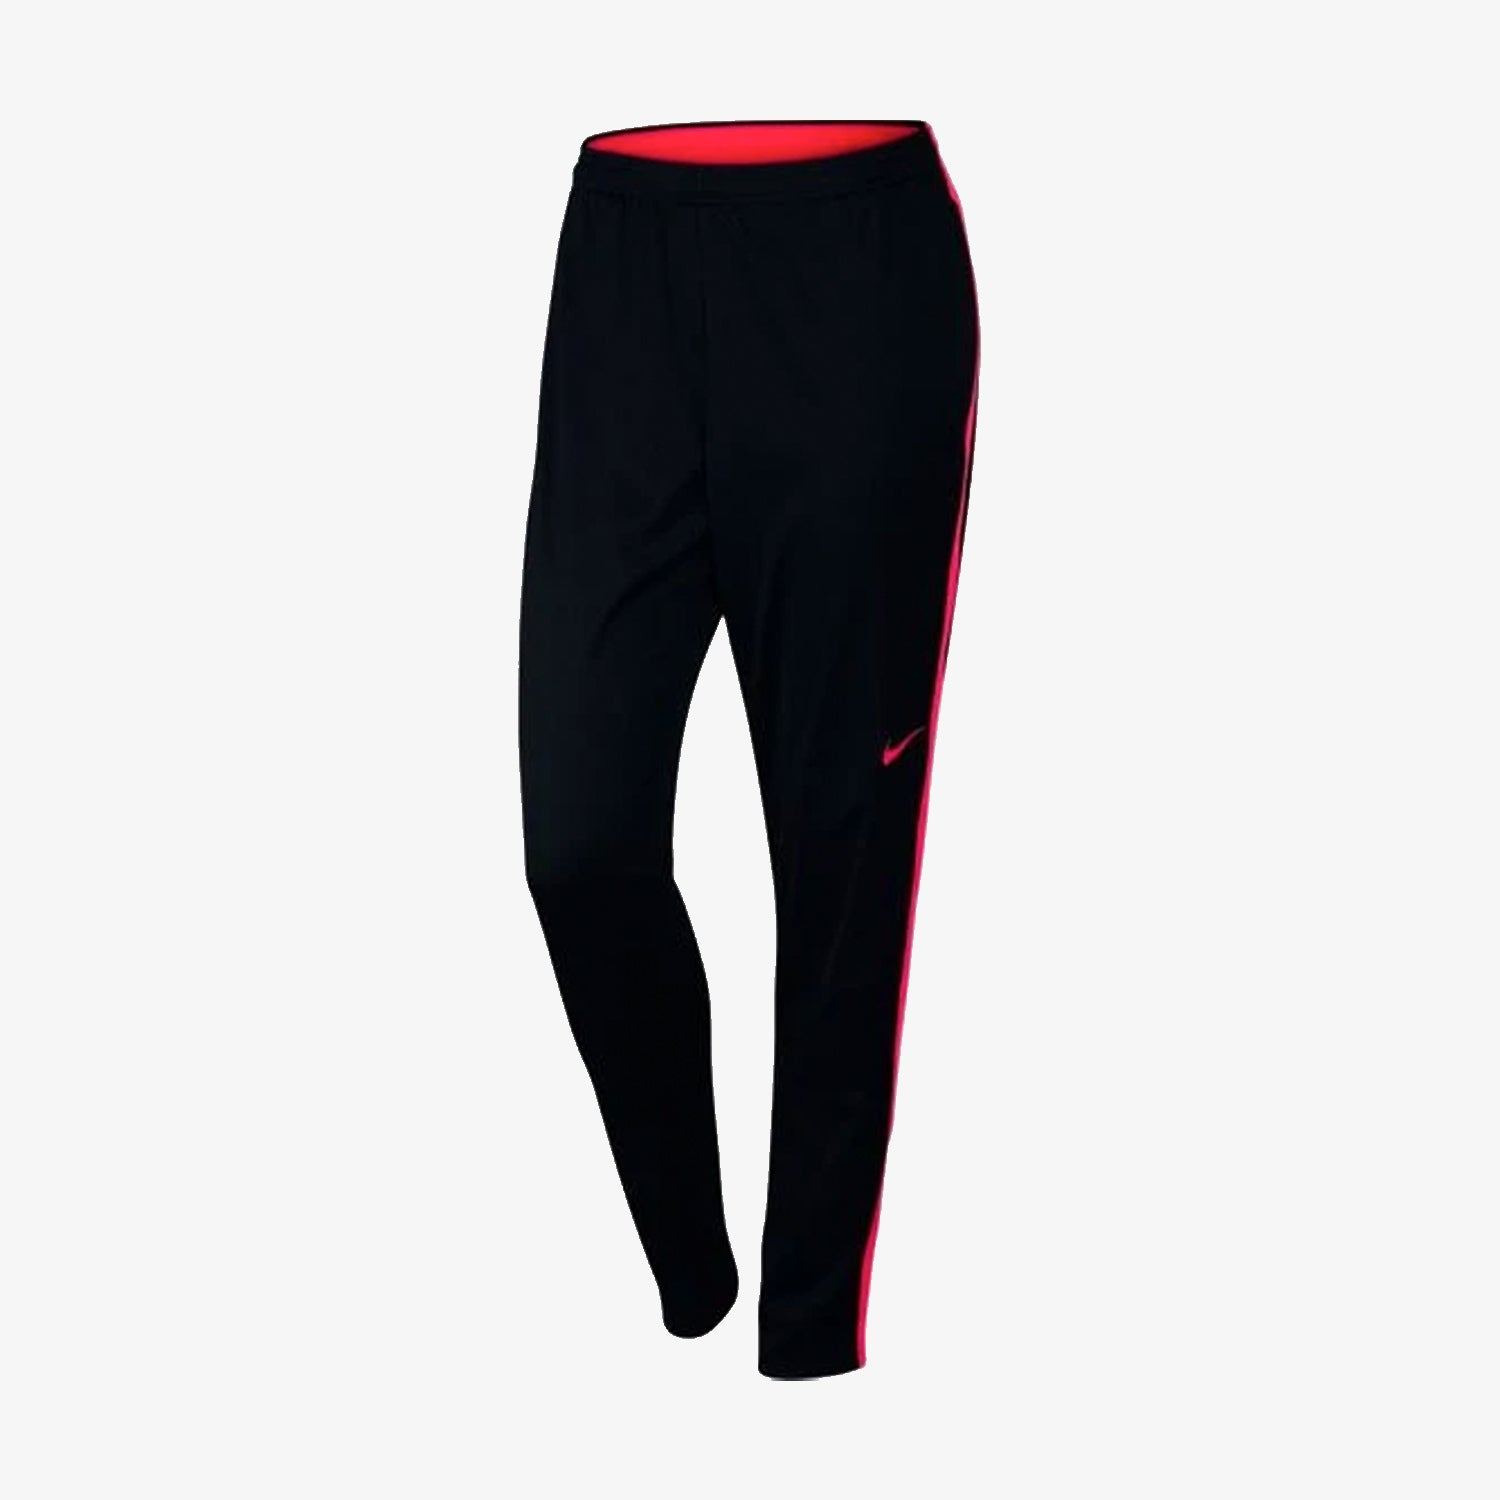 Women's Academy Dri-Fit Pants - Black